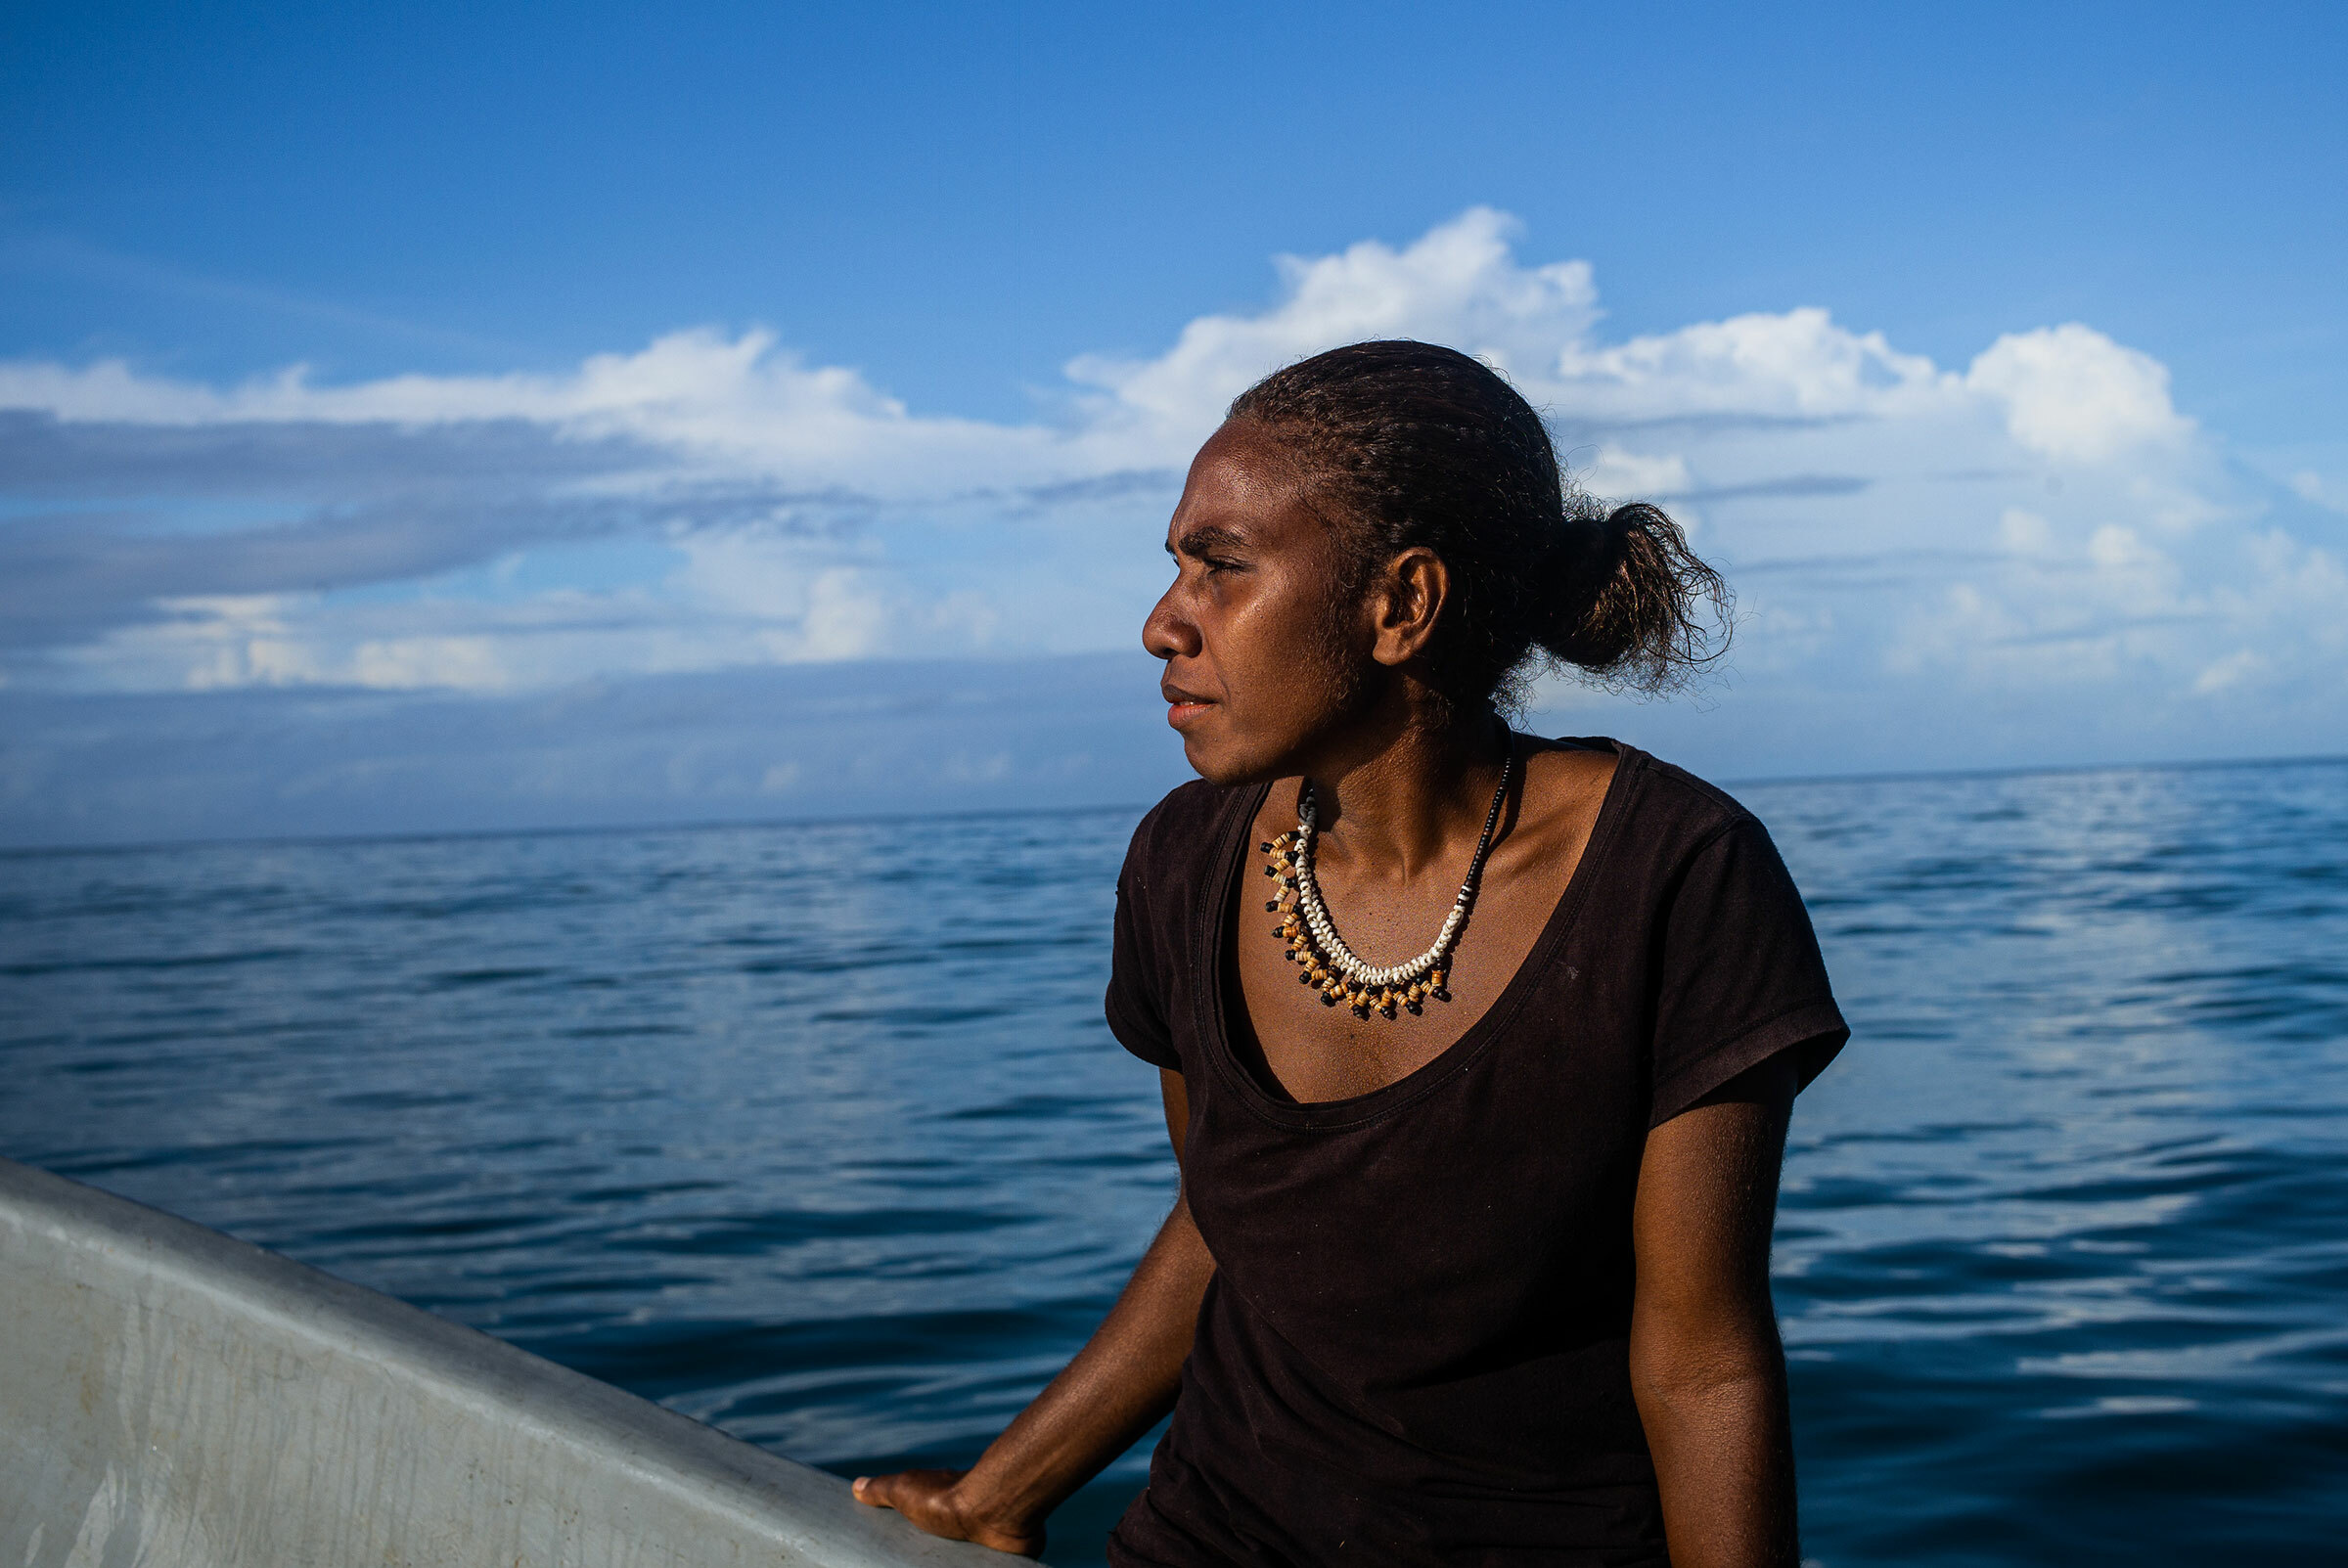 A woman staring into the distance in front of water